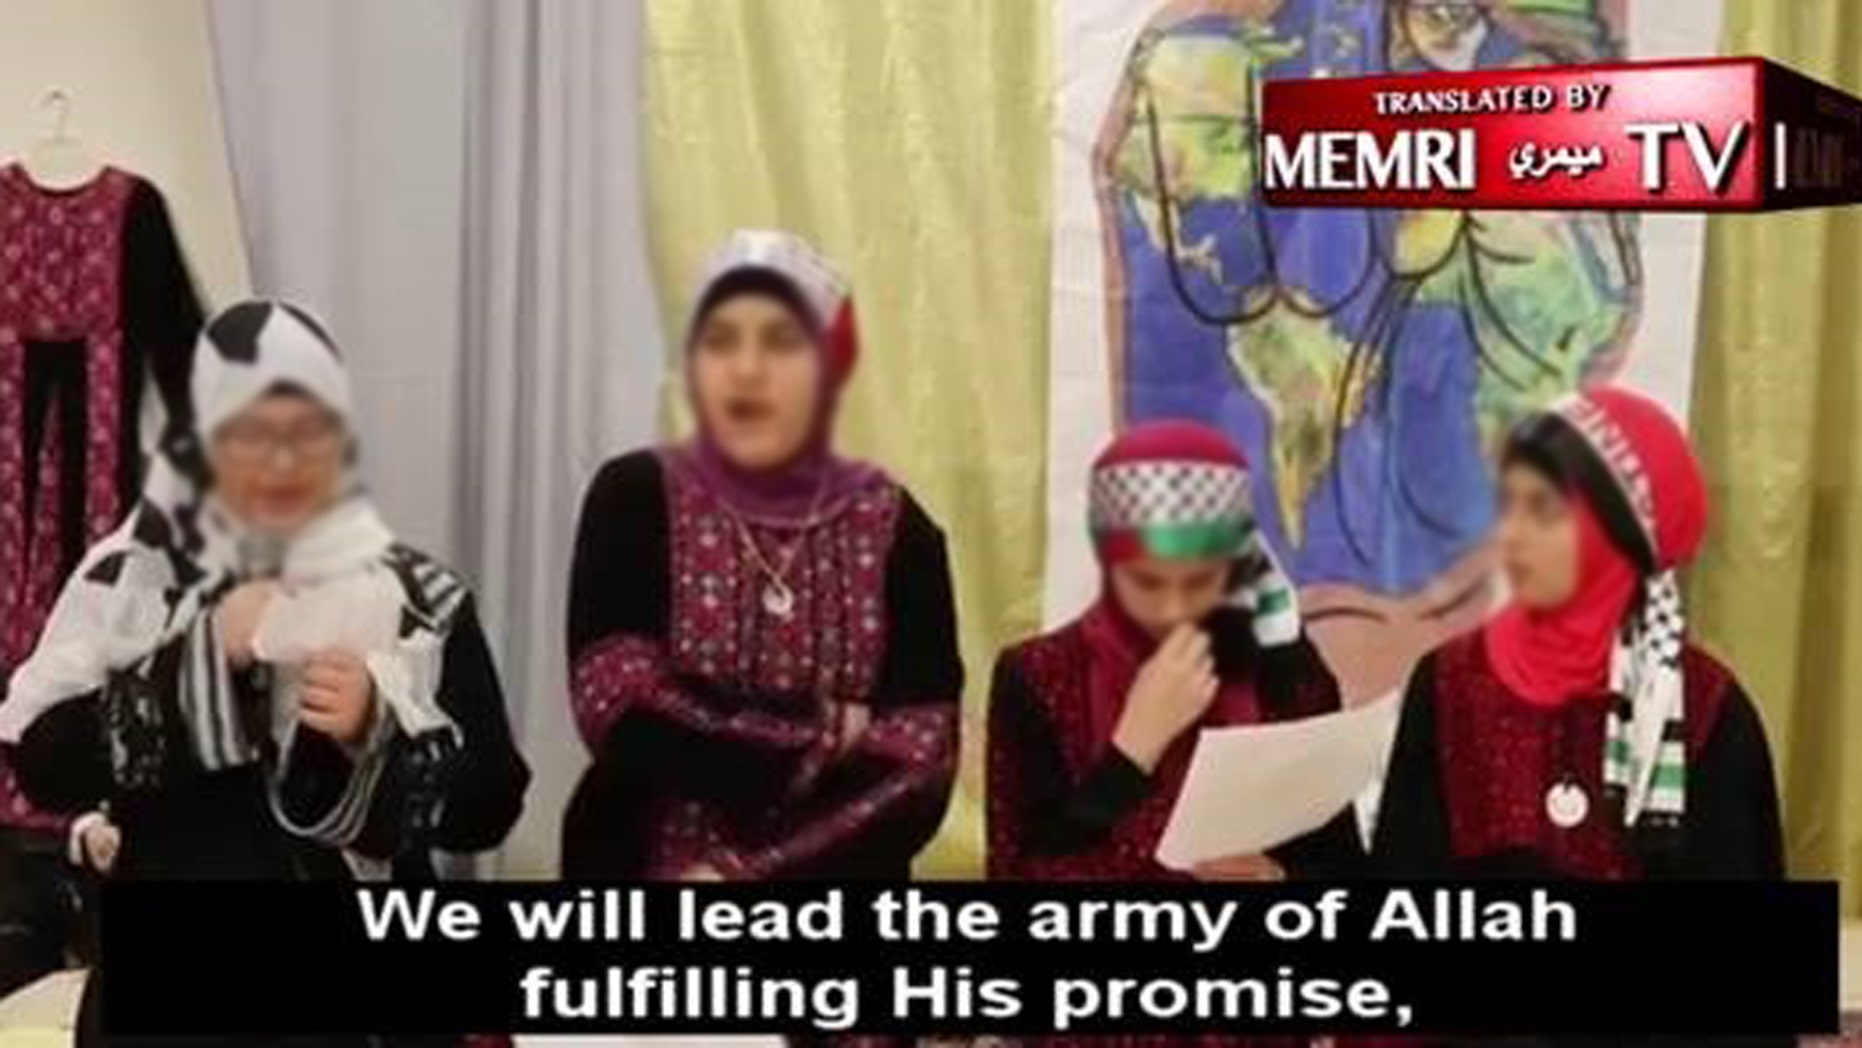 Westlake Legal Group armyofAllahkids1 Shocking video of children in Philadelphia Muslim Society: 'We will chop off their heads' for Allah fox-news/world/terrorism/religious-terror fox-news/us/us-regions/northeast/pennsylvania fox-news/us/religion fox-news/faith-values/faith fox news fnc/us fnc cd2eabdc-29ba-5f86-981a-60f20a3f6203 Caleb Parke article